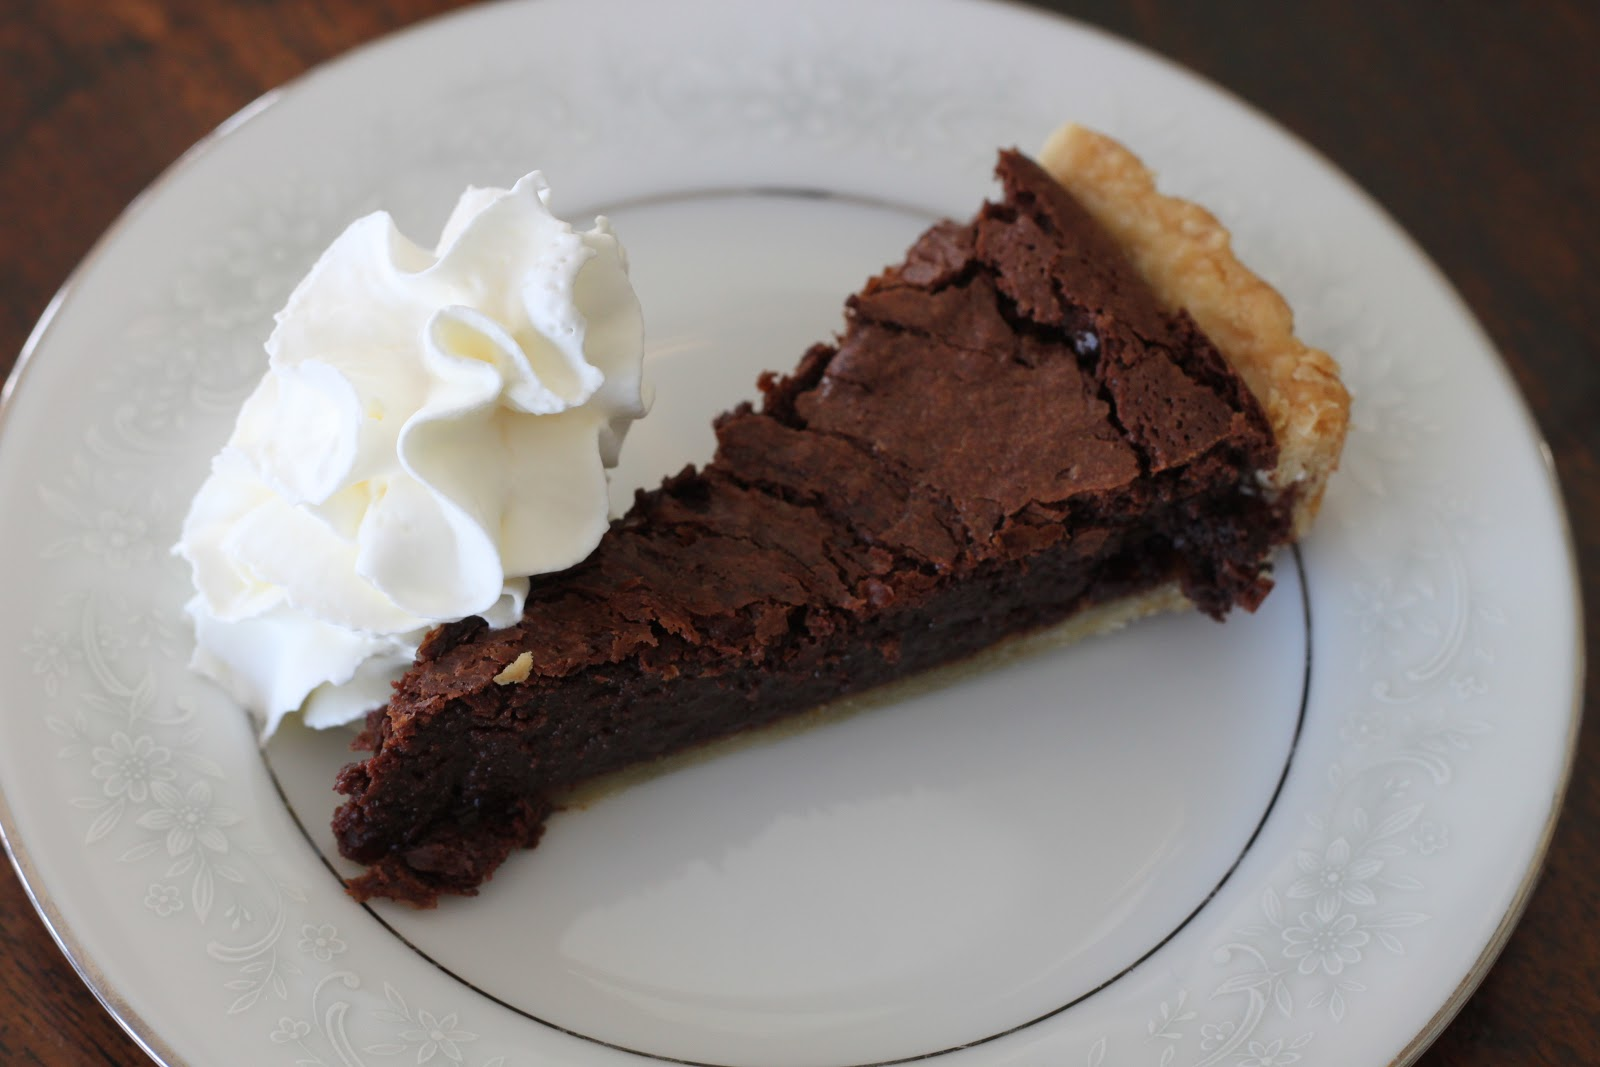 Good Clean Fun: Chocolate Fudge Tart